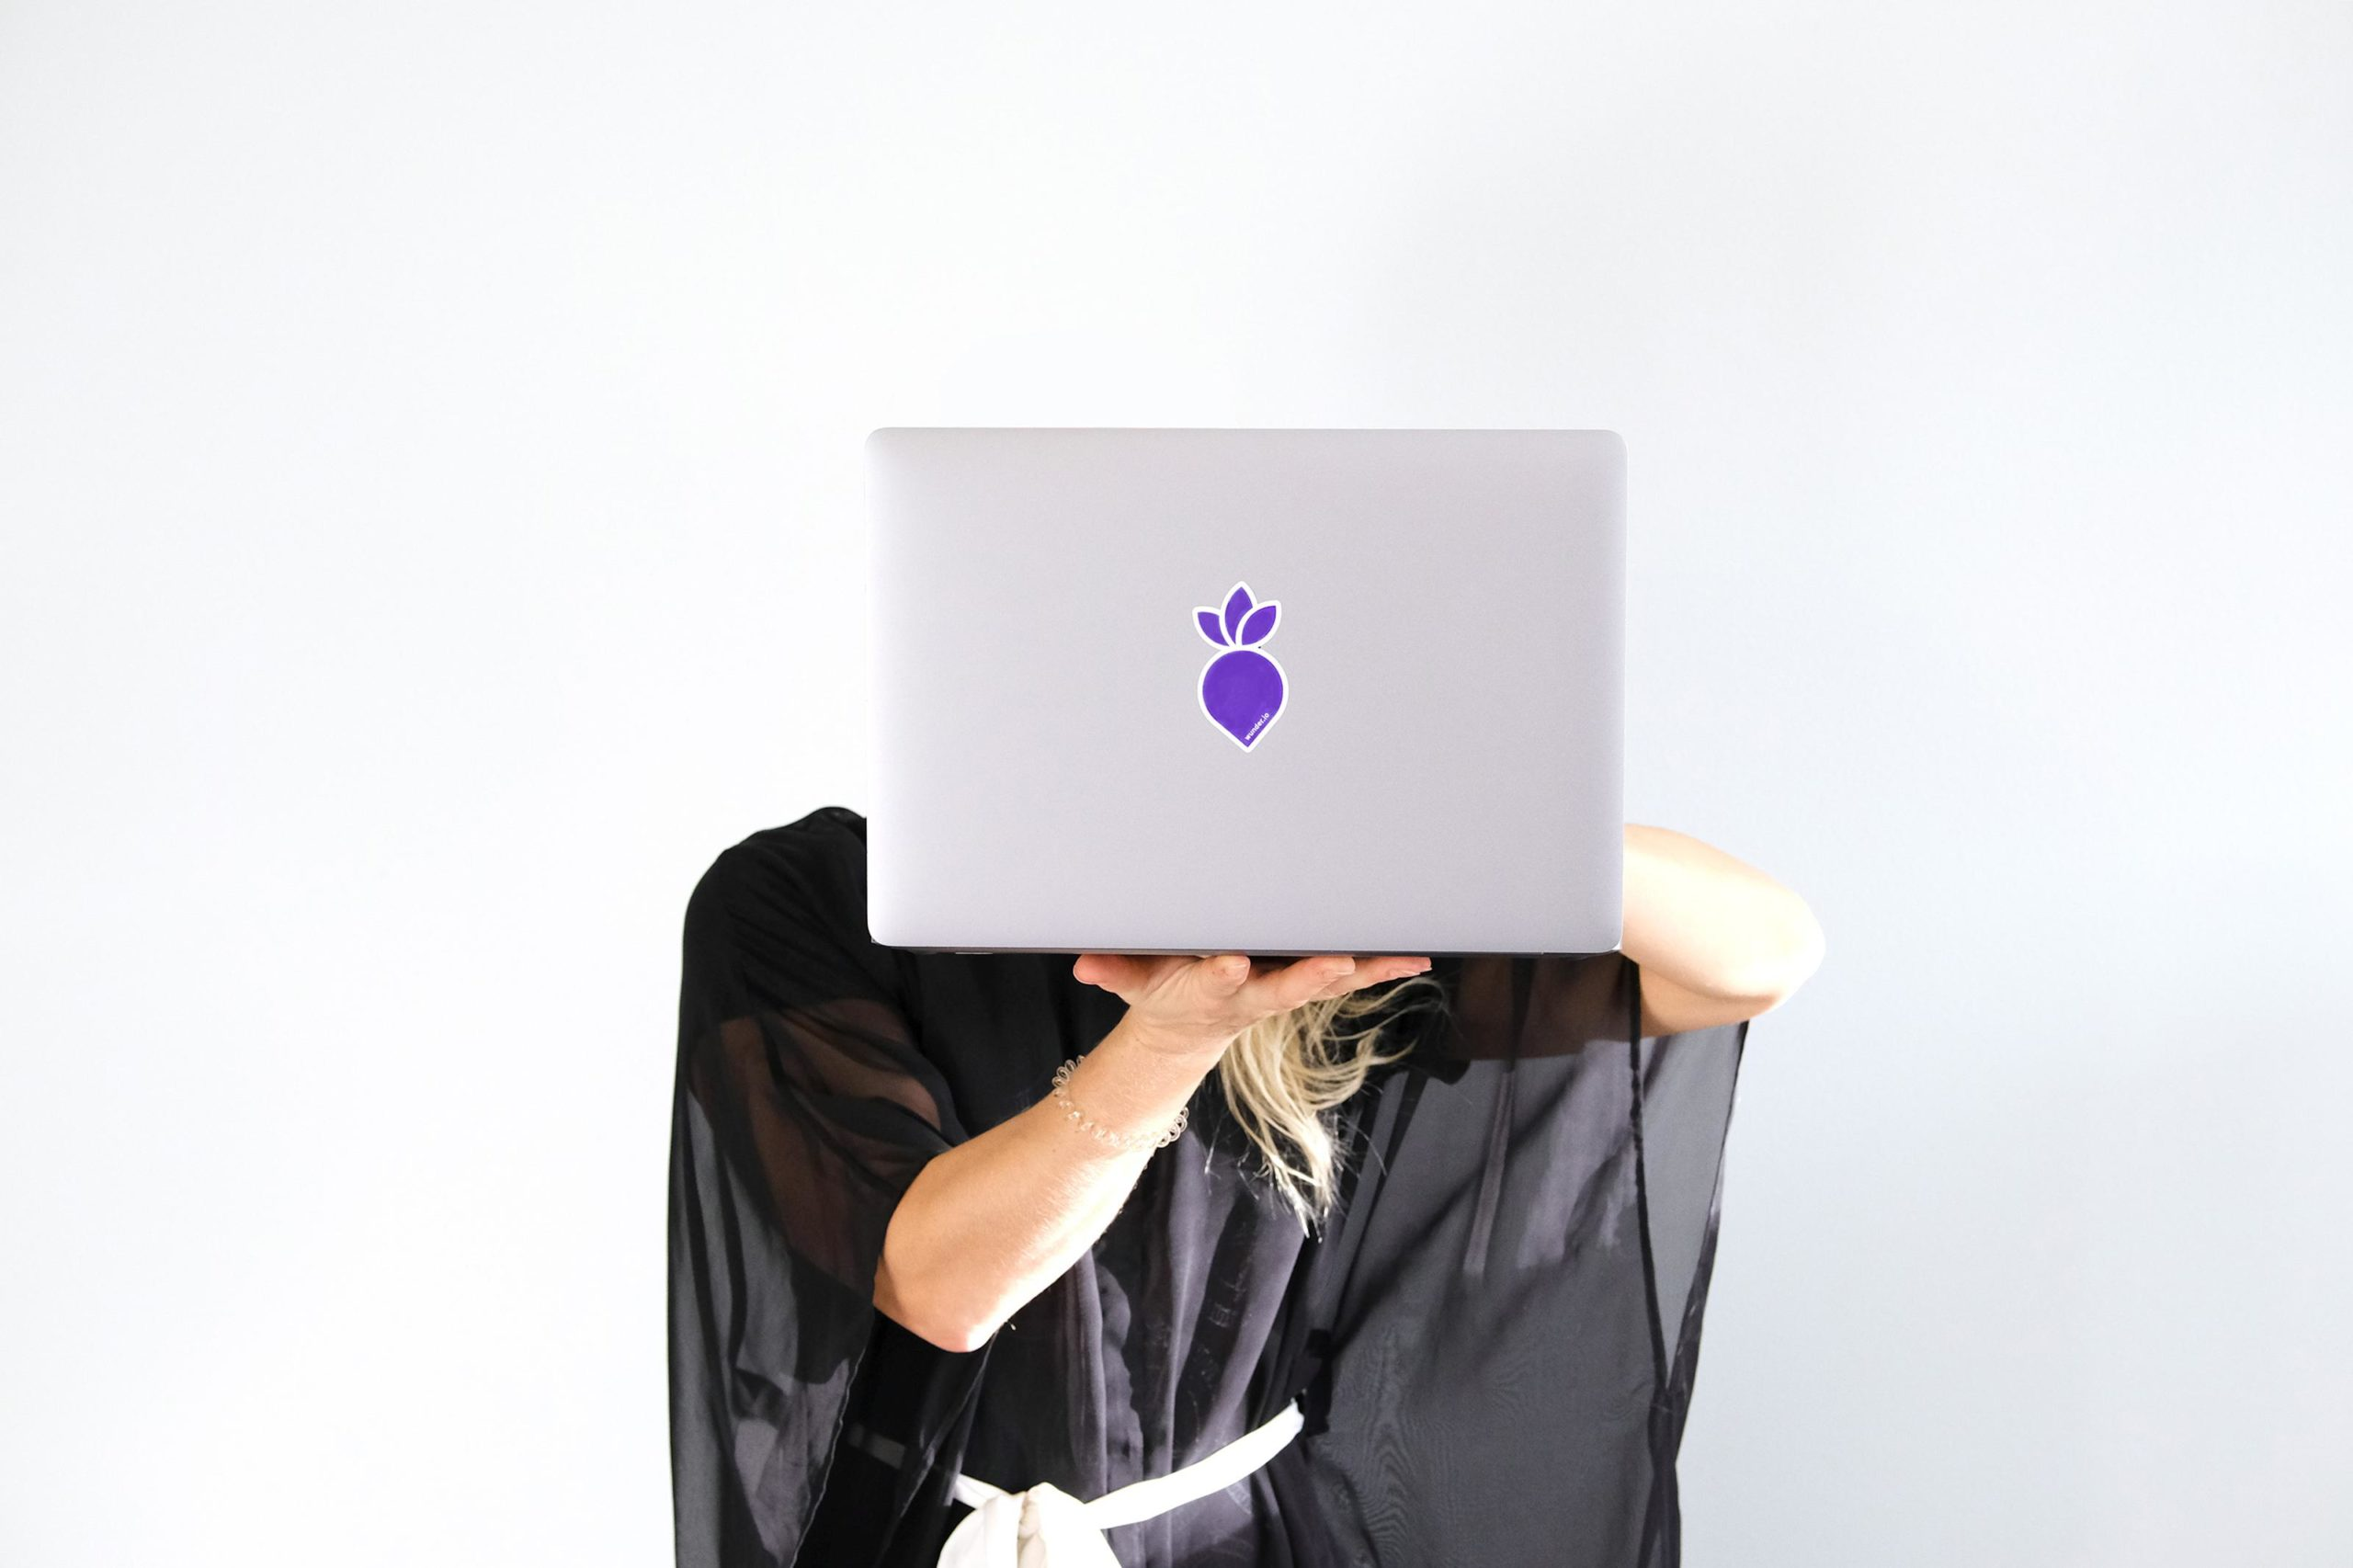 Person holding laptop with one hand in front of they face